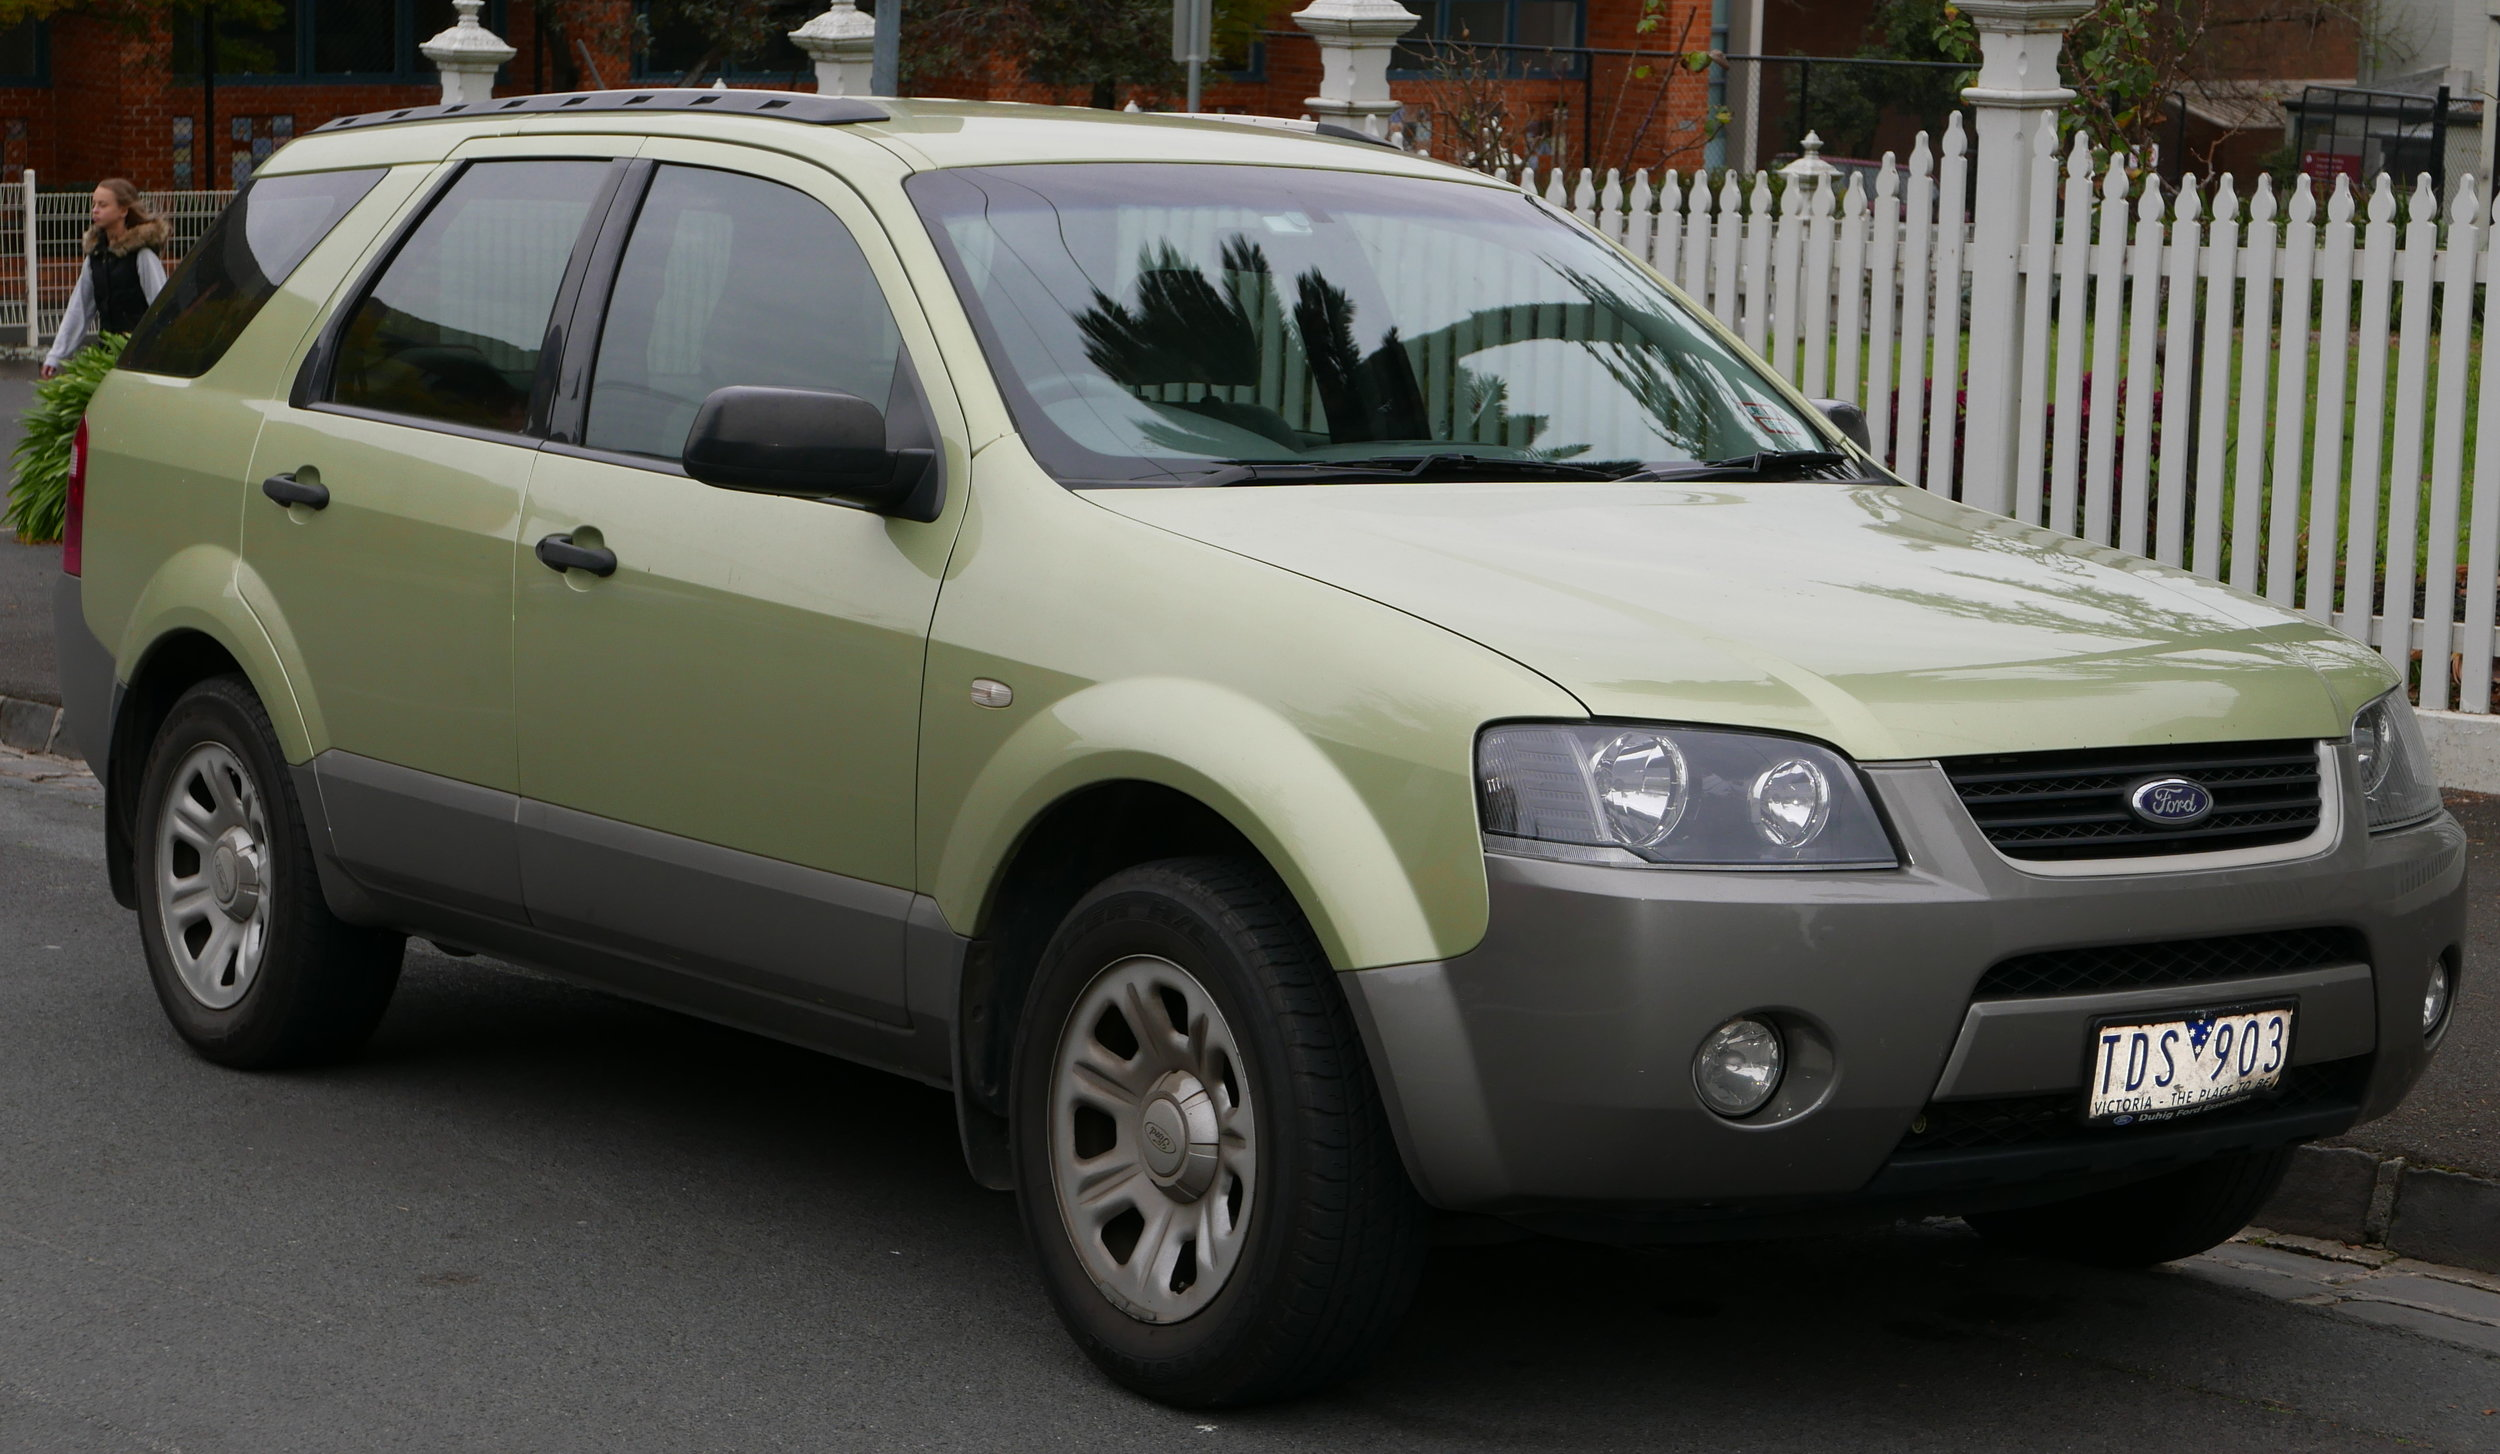 The Ford Territory is a fine example of what the Australian car industry was capable of